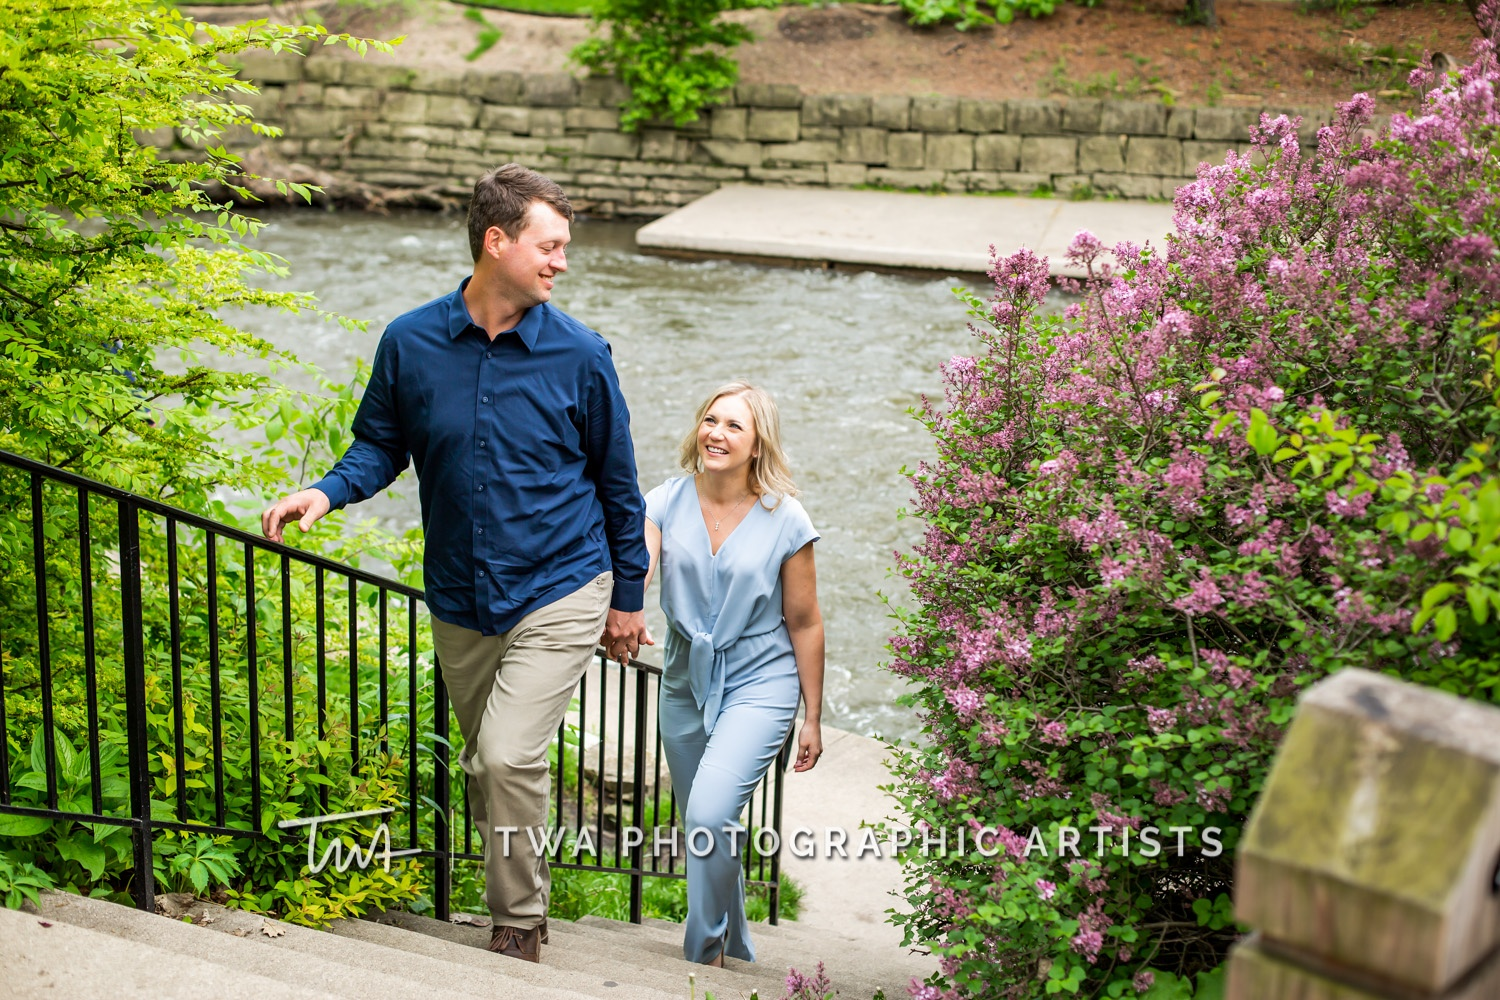 Chicago-Wedding-Photographer-TWA-Photographic-Artists-Naperville-Riverwalk_Fletcher_McDonough_MJ-026